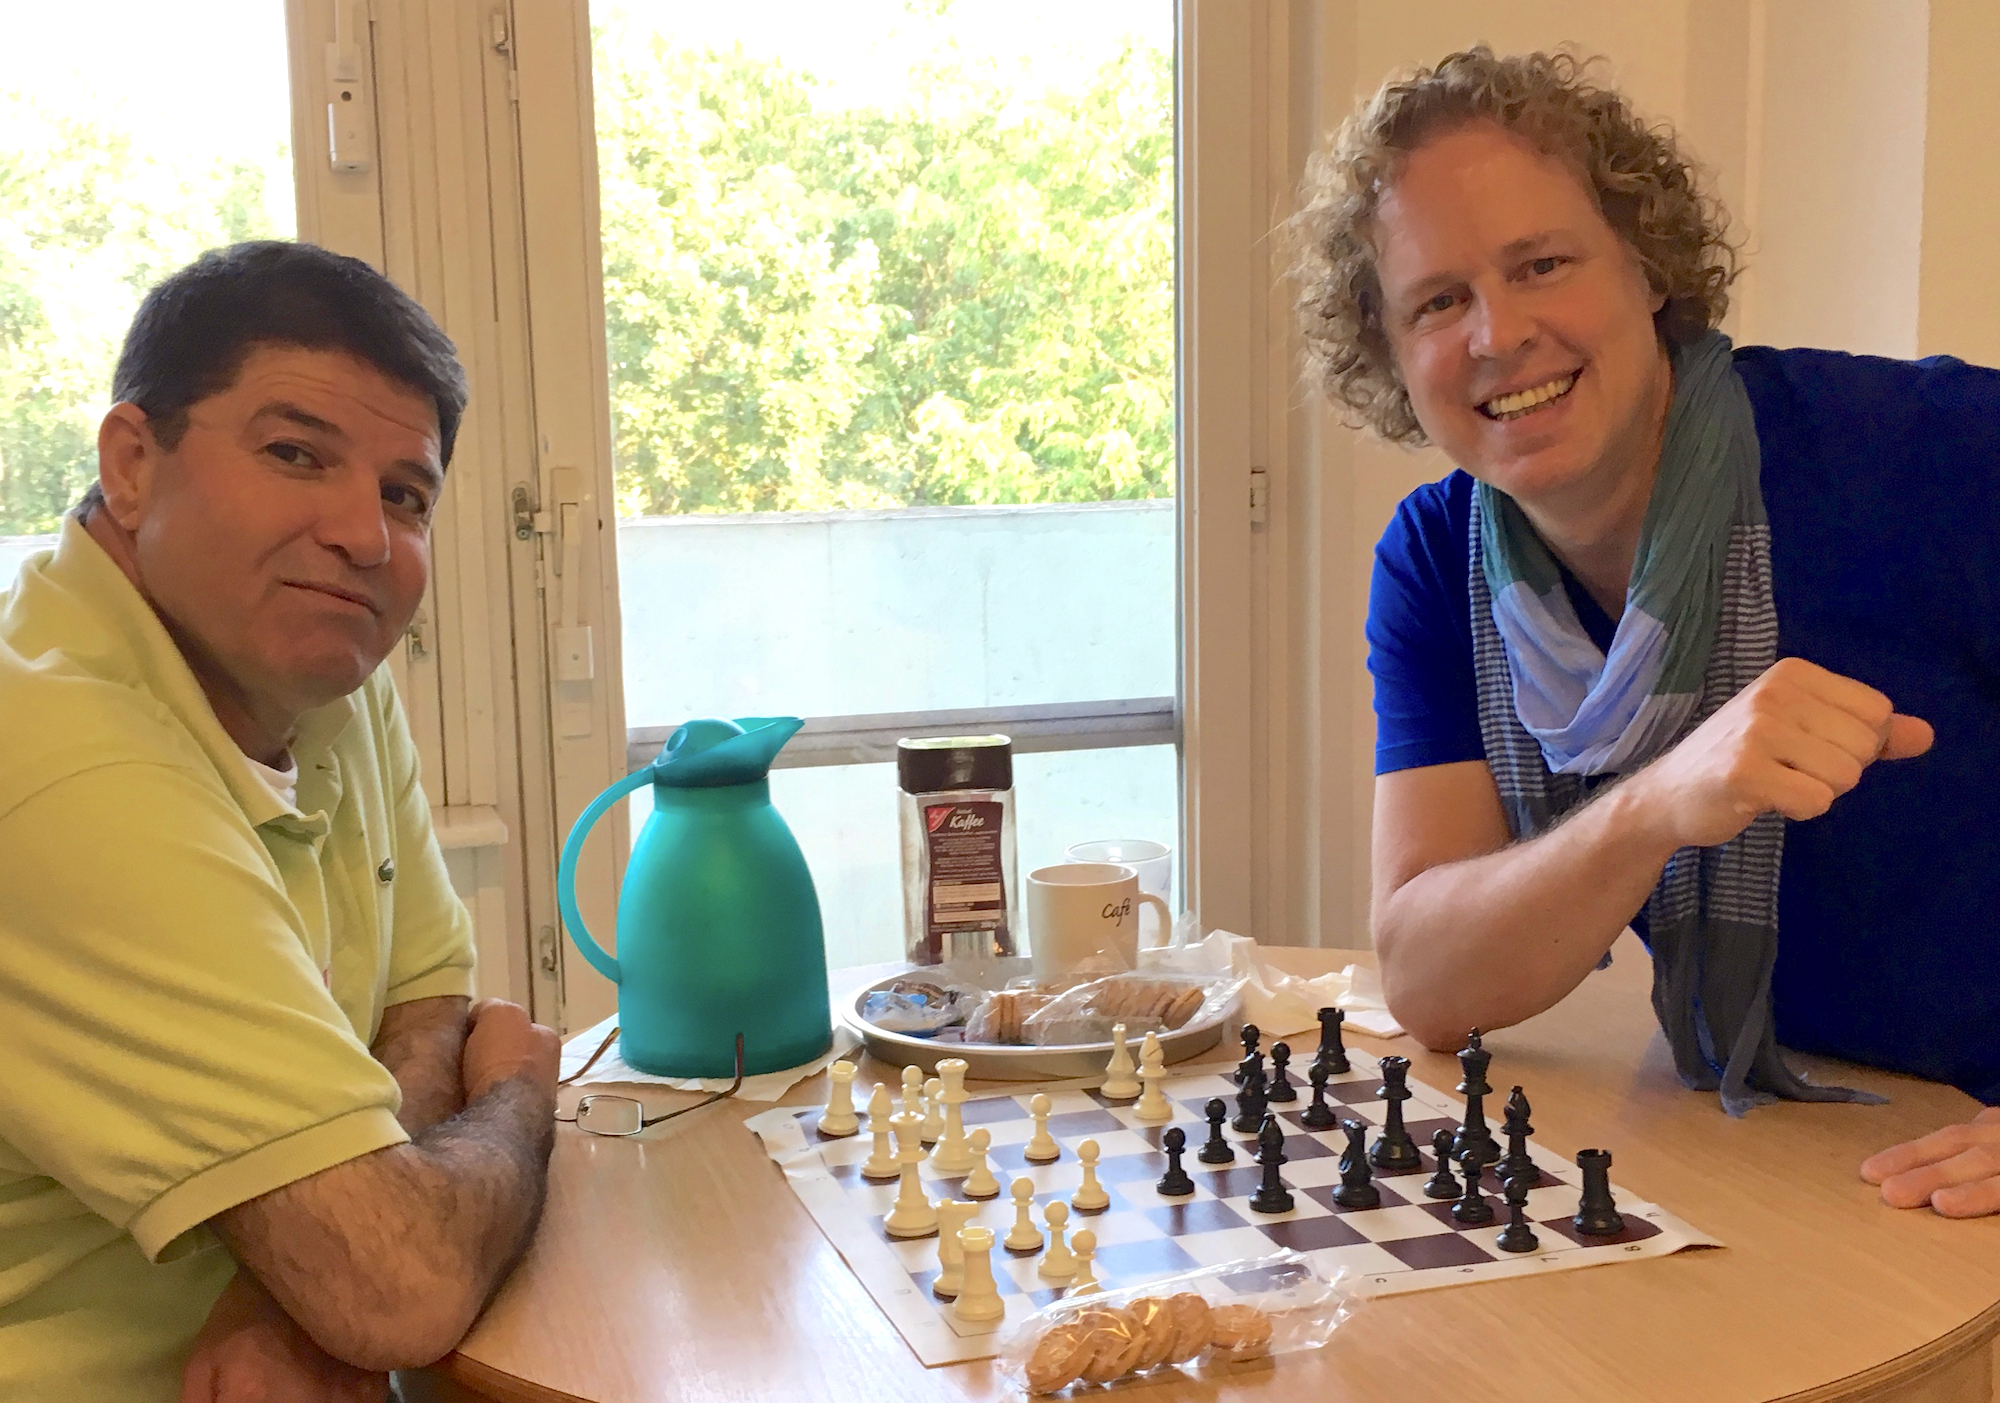 Allers (right) and a new friend playing chess in Berlin.